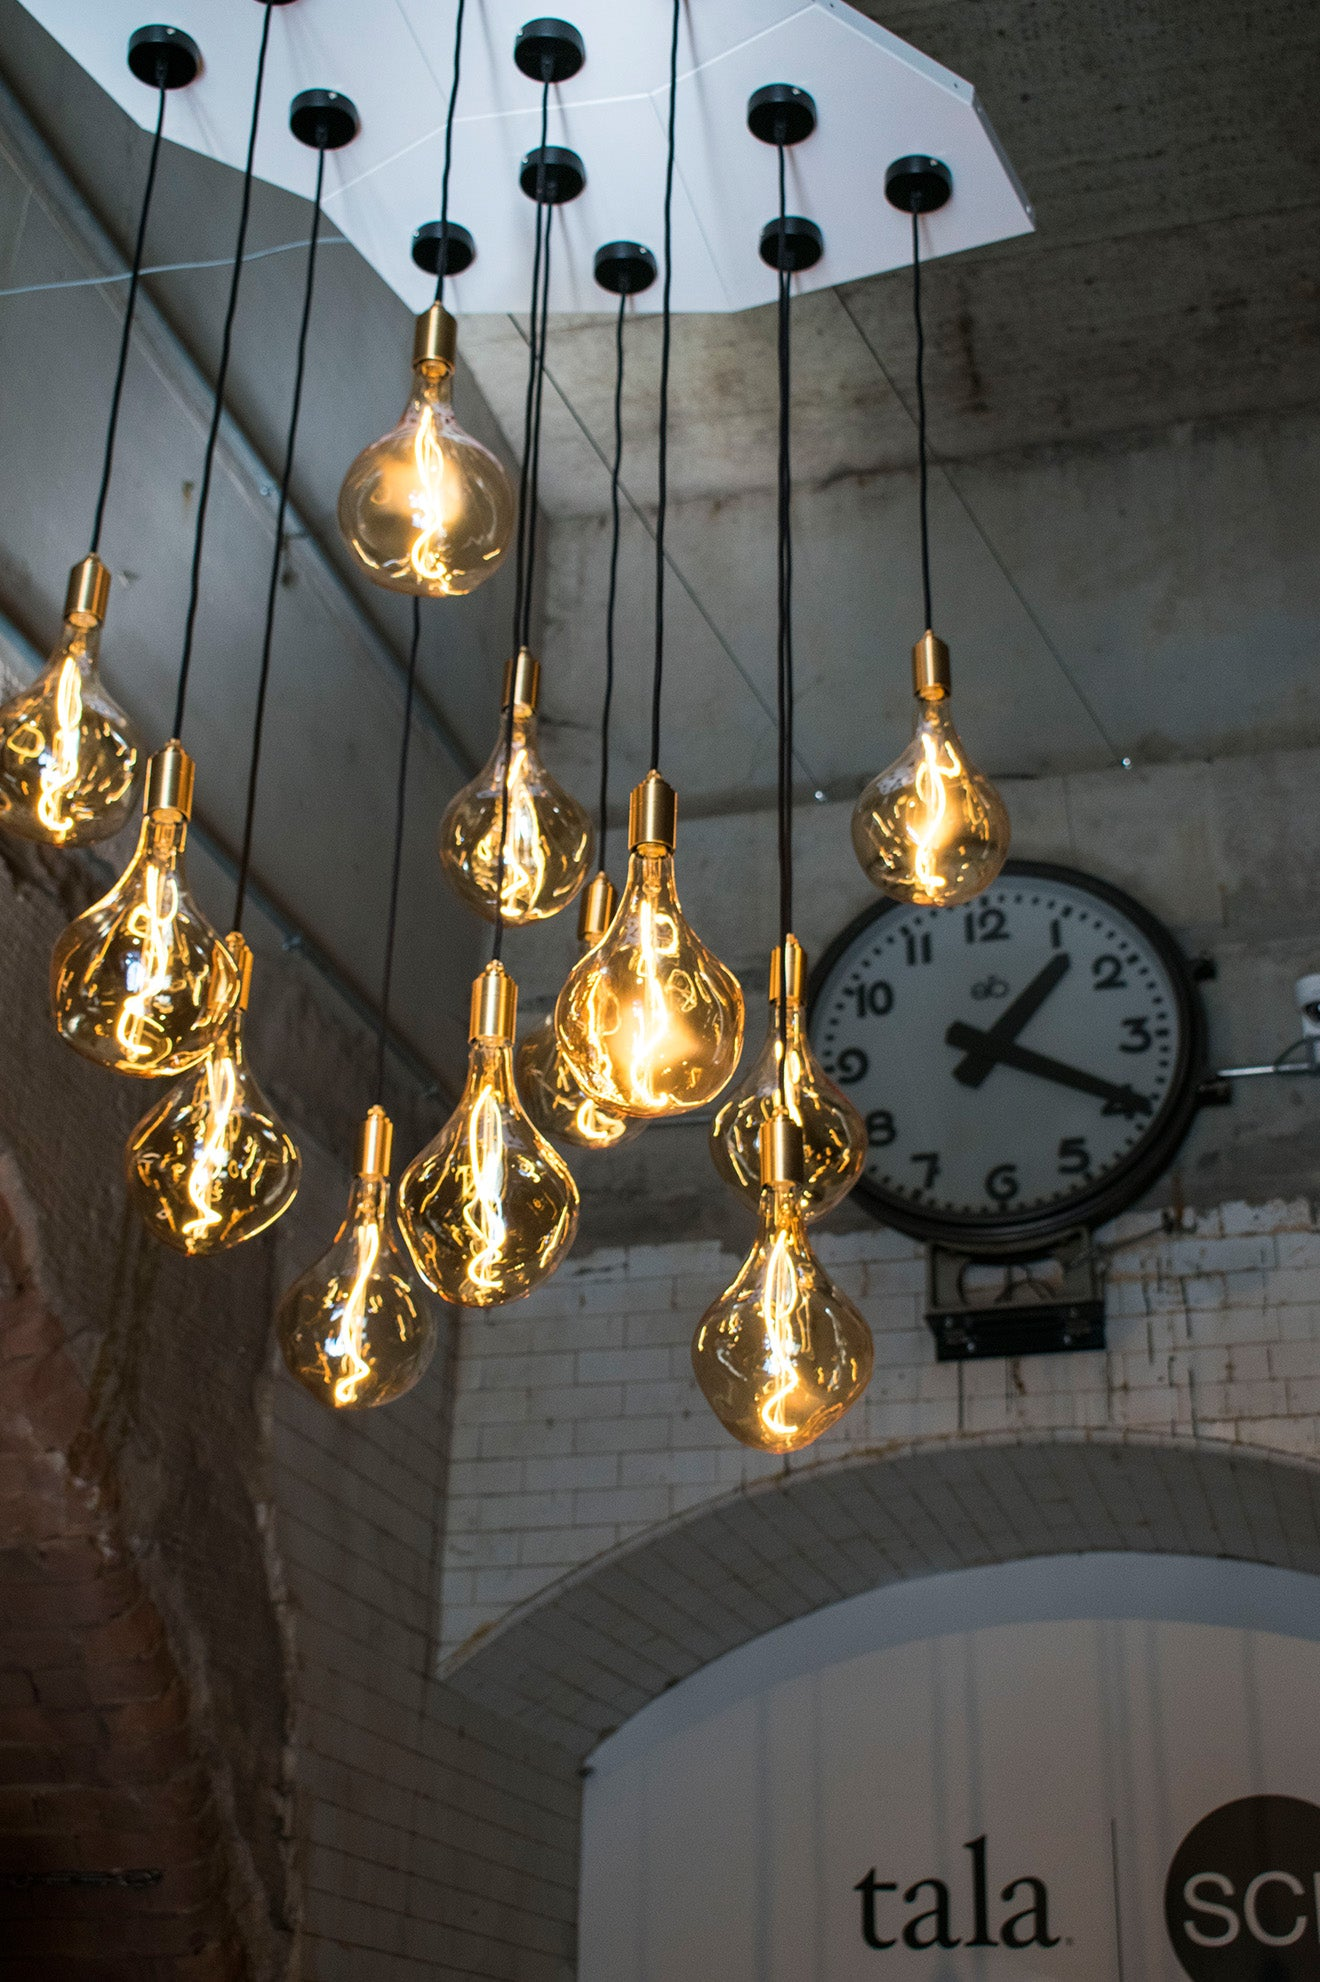 Tala Lighting pendant designs with LED filament under the arches for London Design Festival with SCP